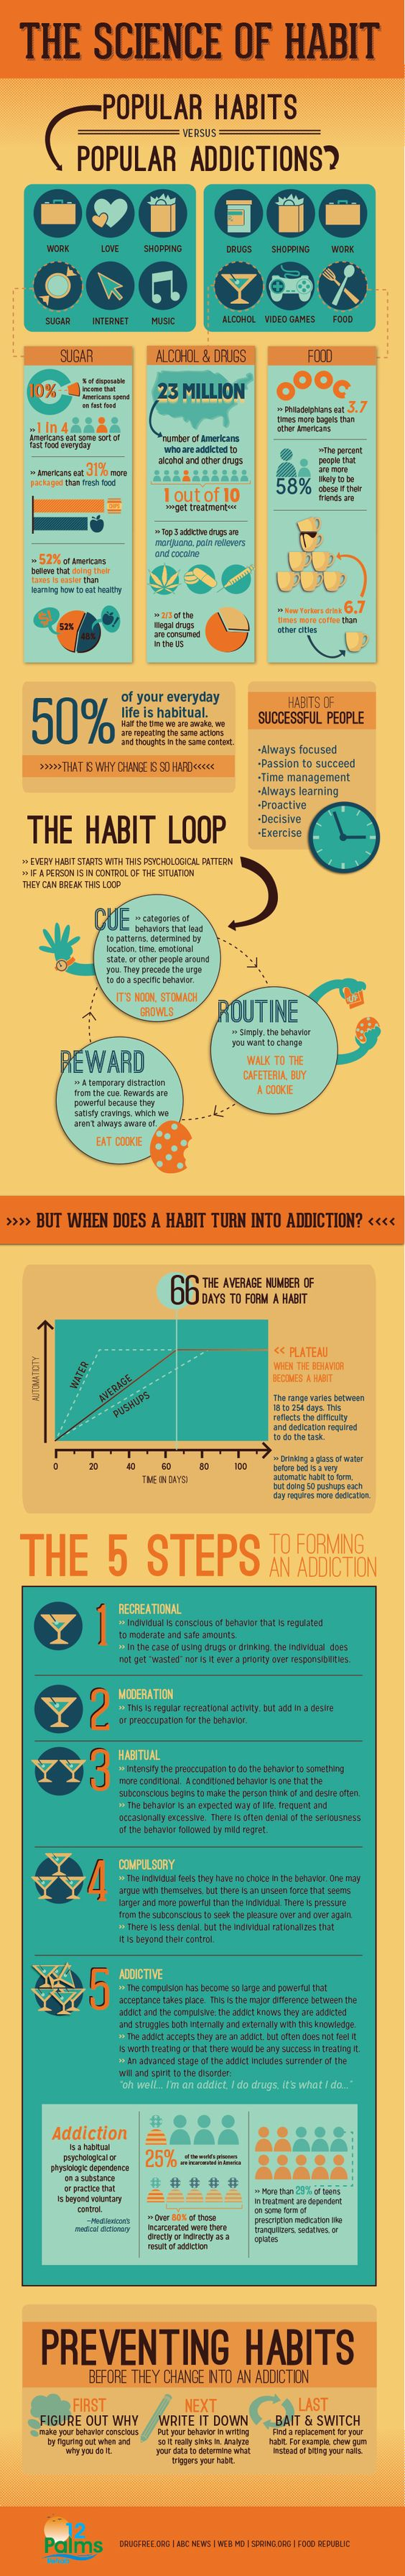 what is an addiction and how and why do people become addicted What is addiction why do people get addicted to games numerous research studies have shown that for highly engaged and addictive video game players, a sense of purpose or meaning is a significant part of what creates a desire to continue playing.